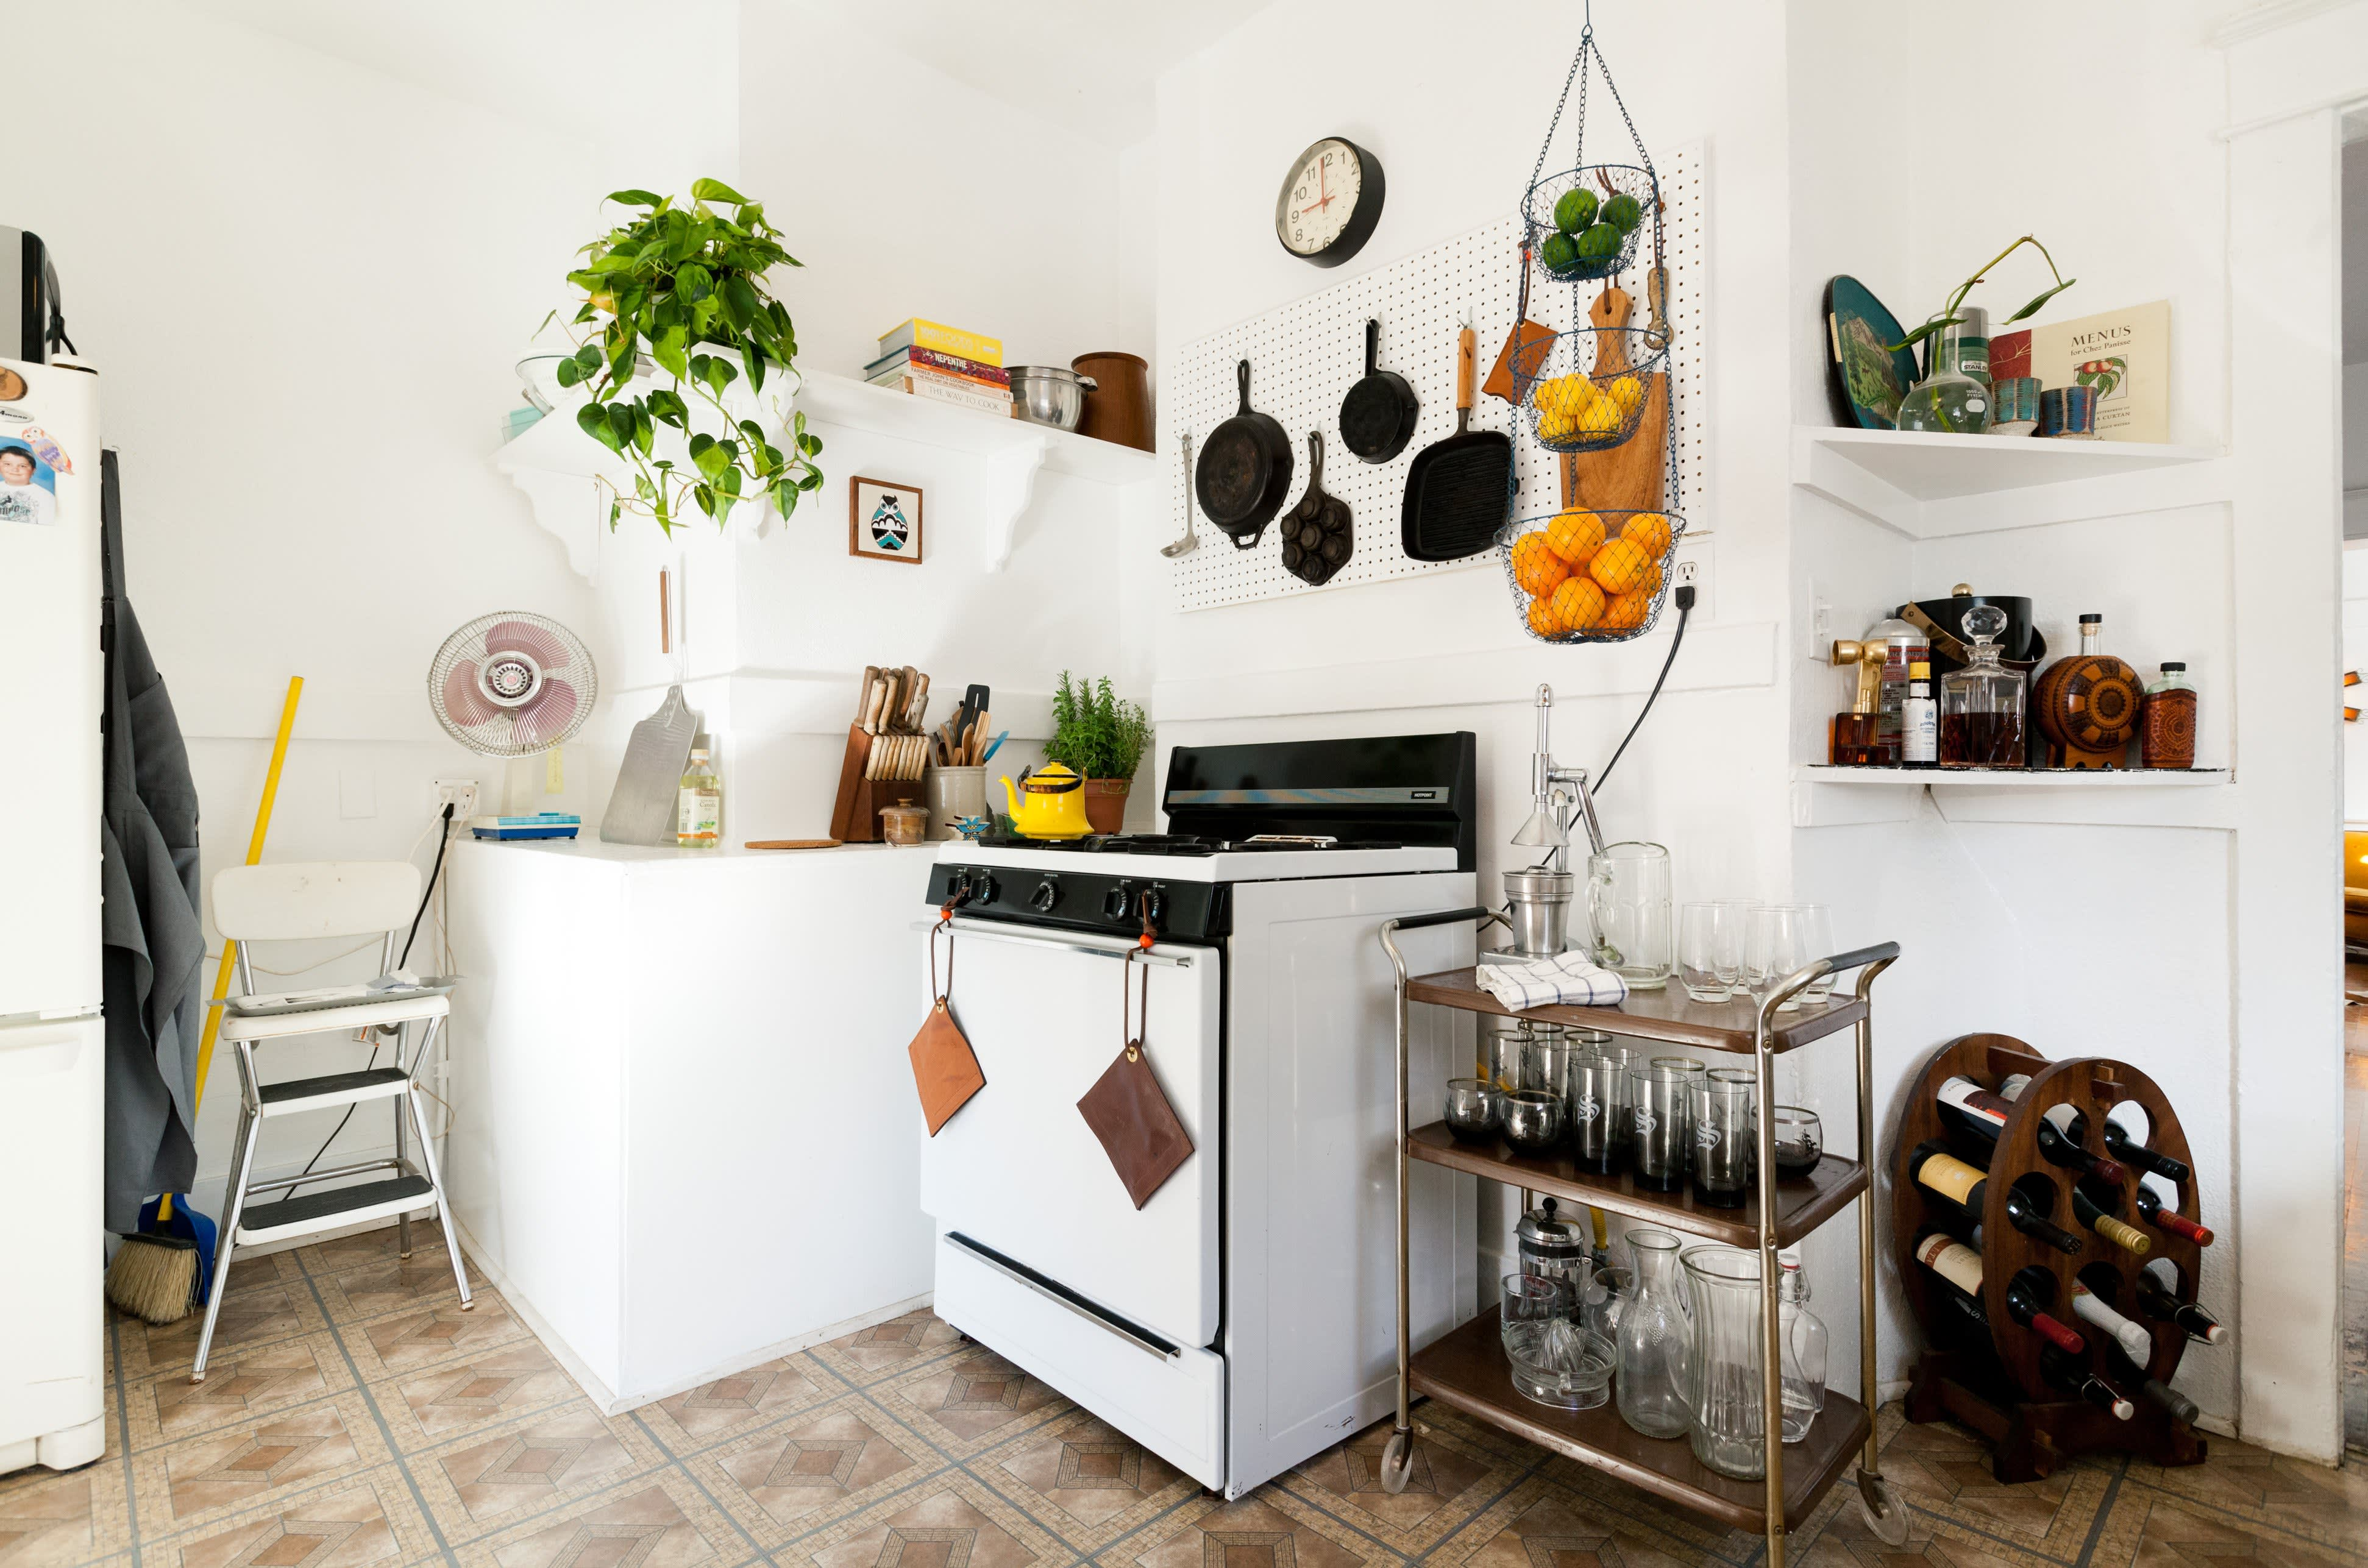 Where I Cook: Leather Craftsman Steven Soria's Rental Kitchen: gallery image 2